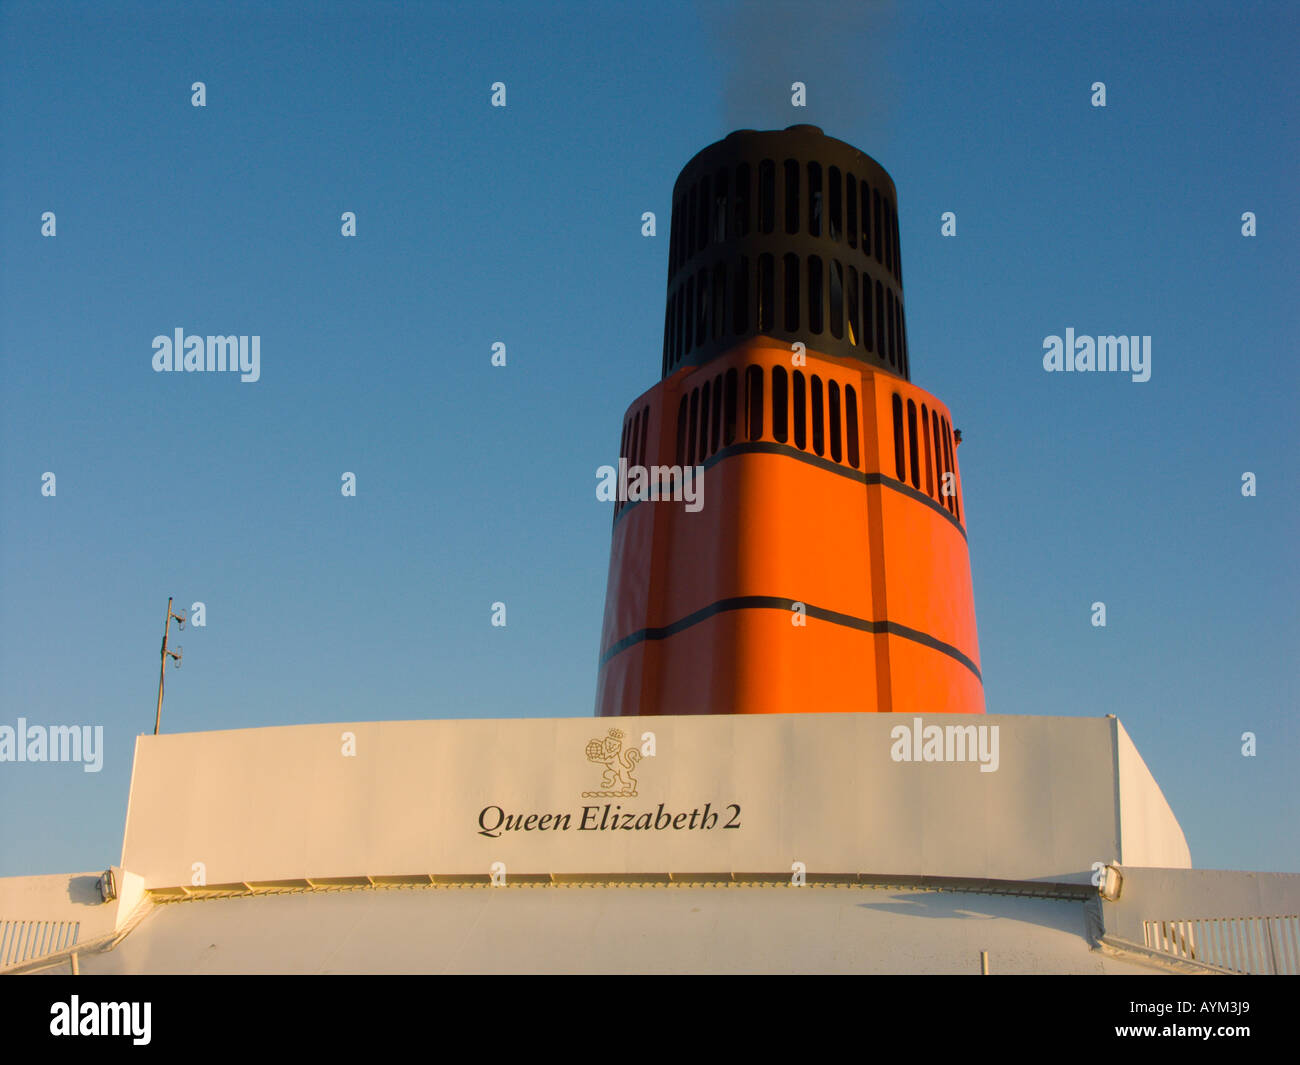 Detail of the QE2 cruise ship the funnel - Stock Image